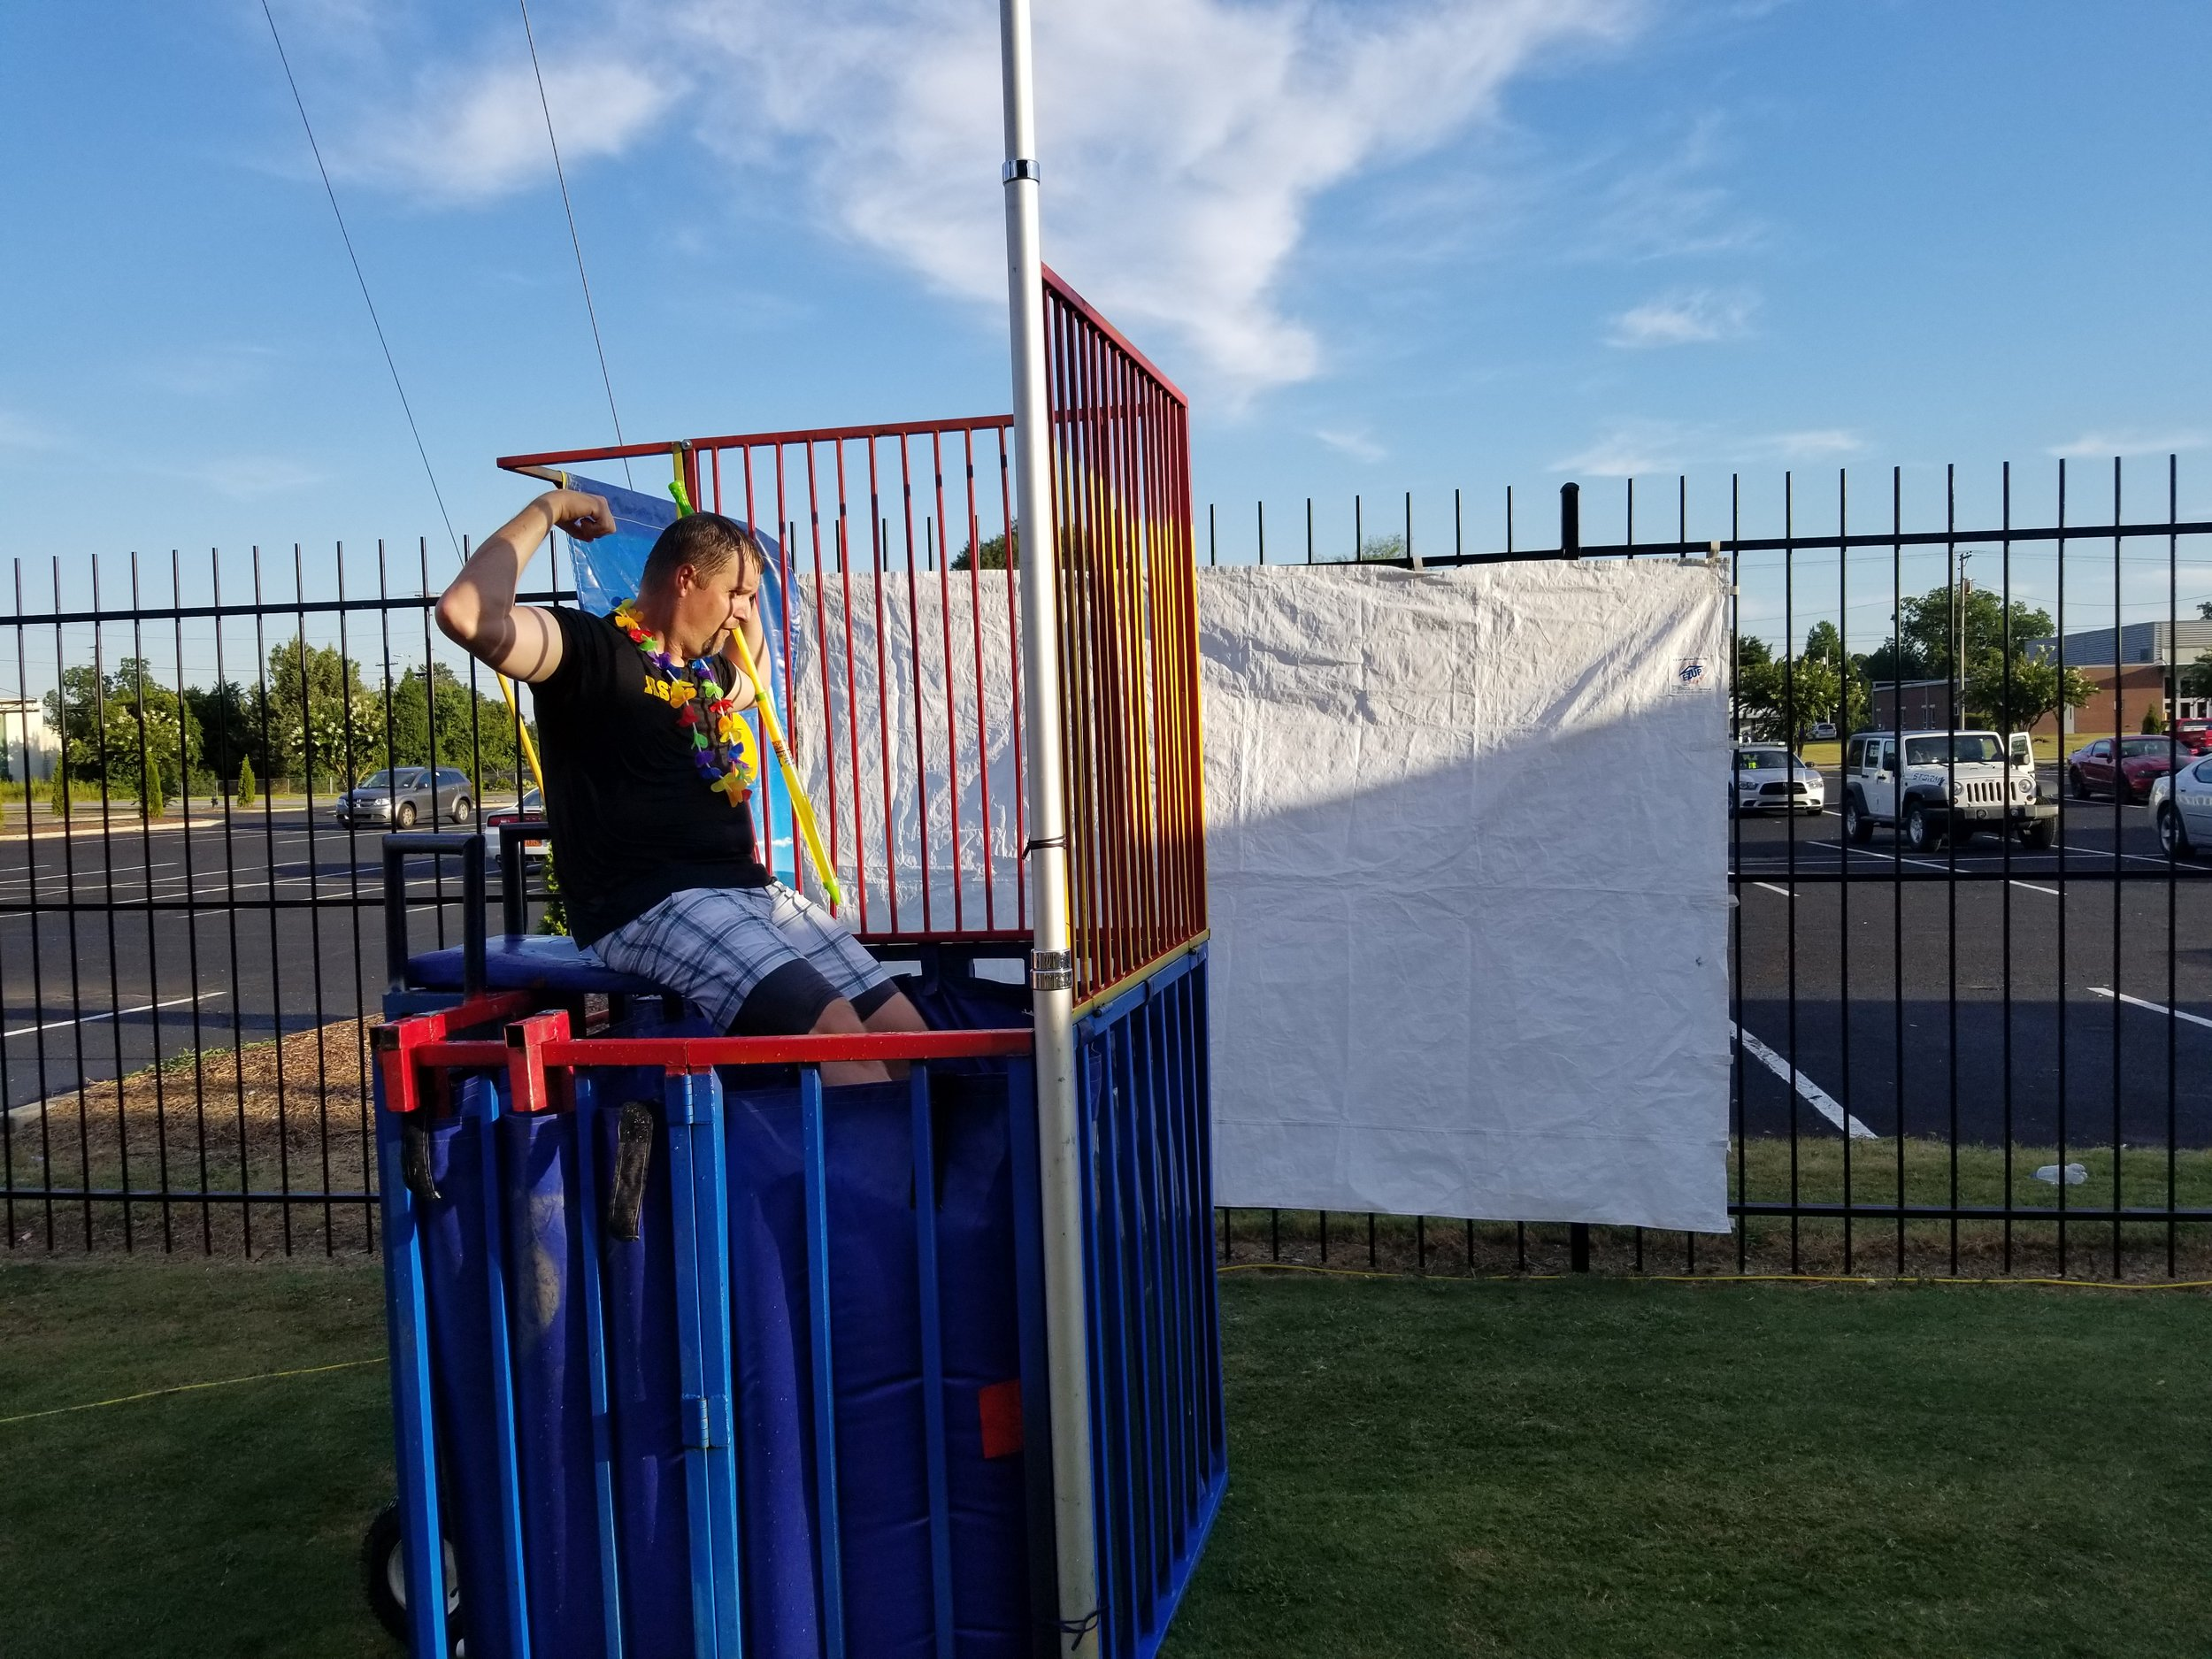 Kinston City Manager Tony Sears flexes his muscles as a taunt to the dunk booth thrower during the 2017 National Night Out. Submitted photo.